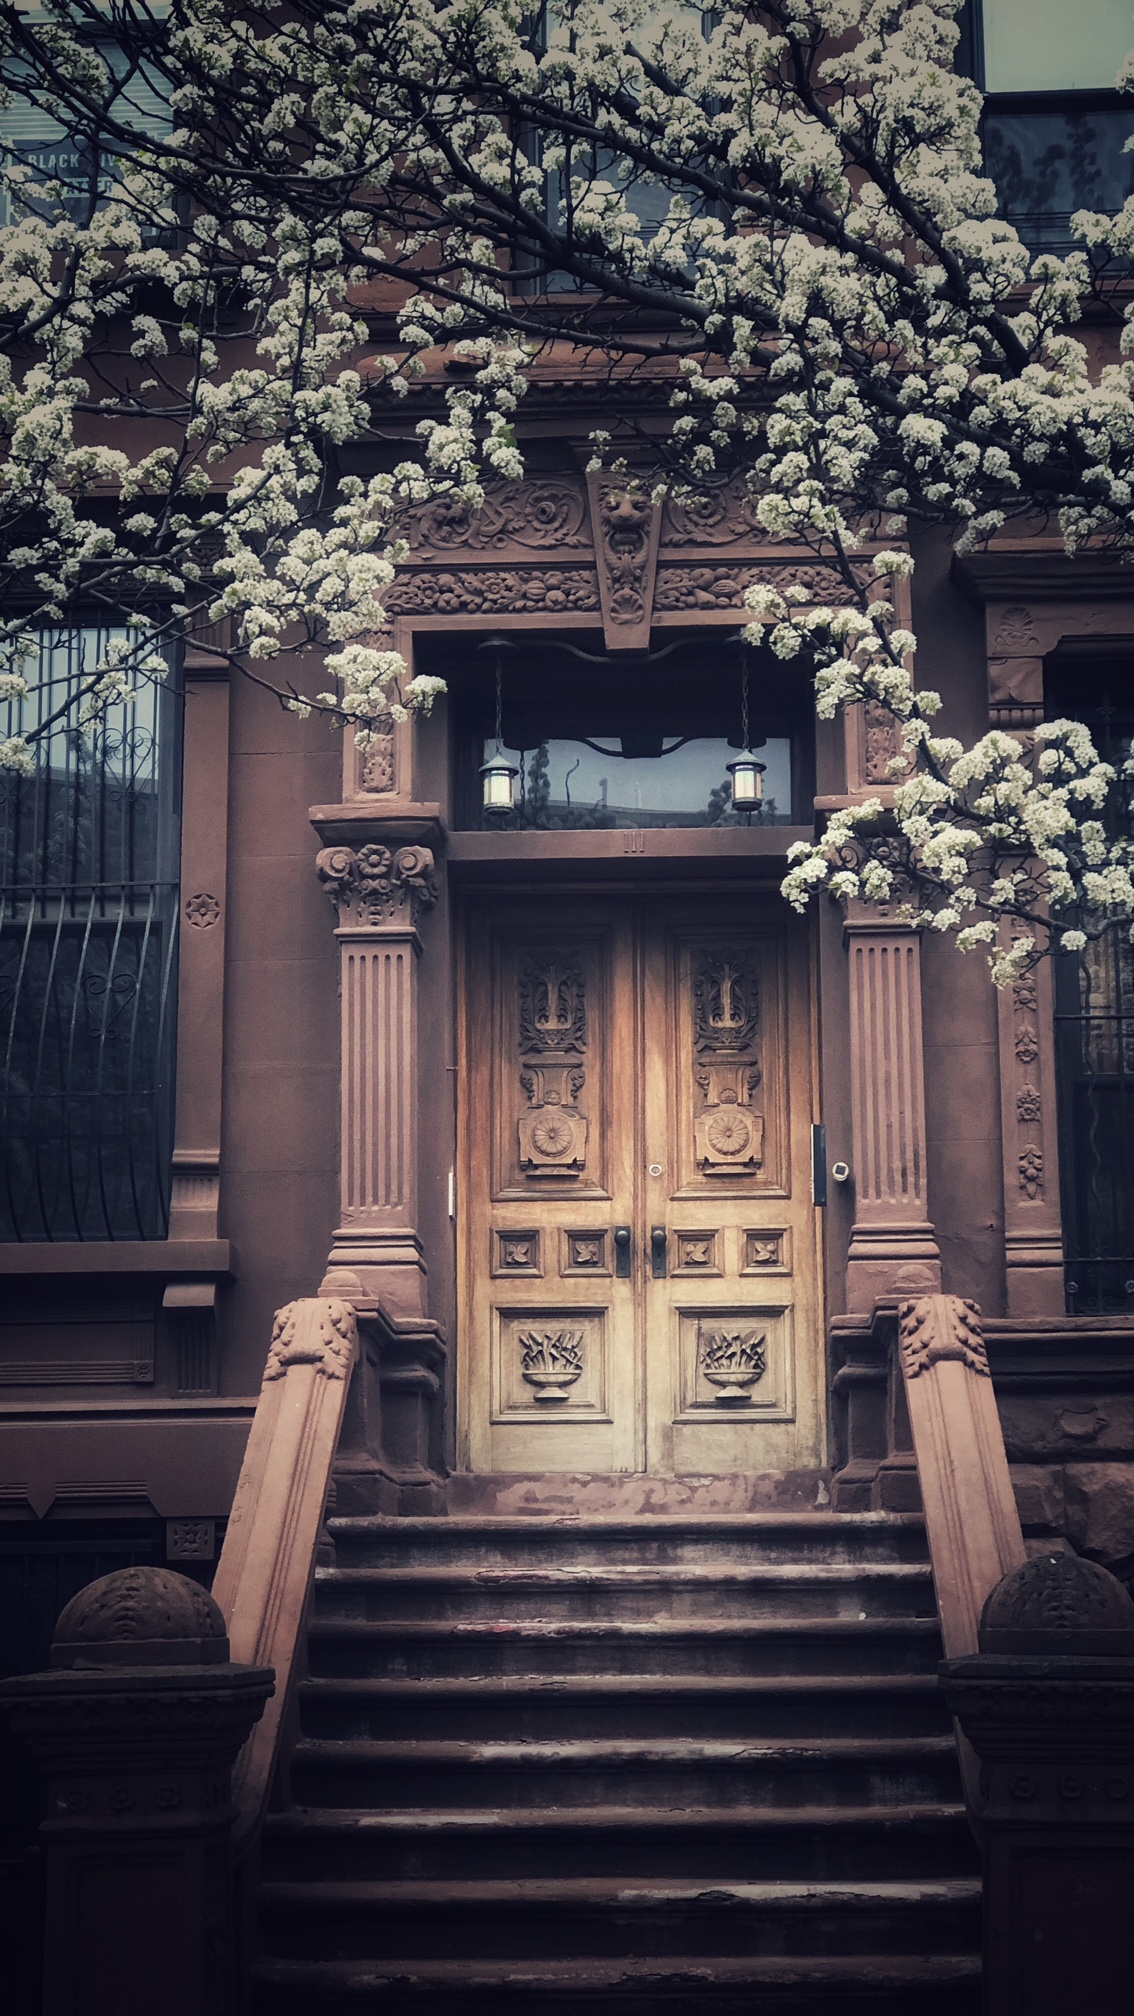 Harlem | NYC | Walking allowed me to see the evidence of 'spring has sprung'